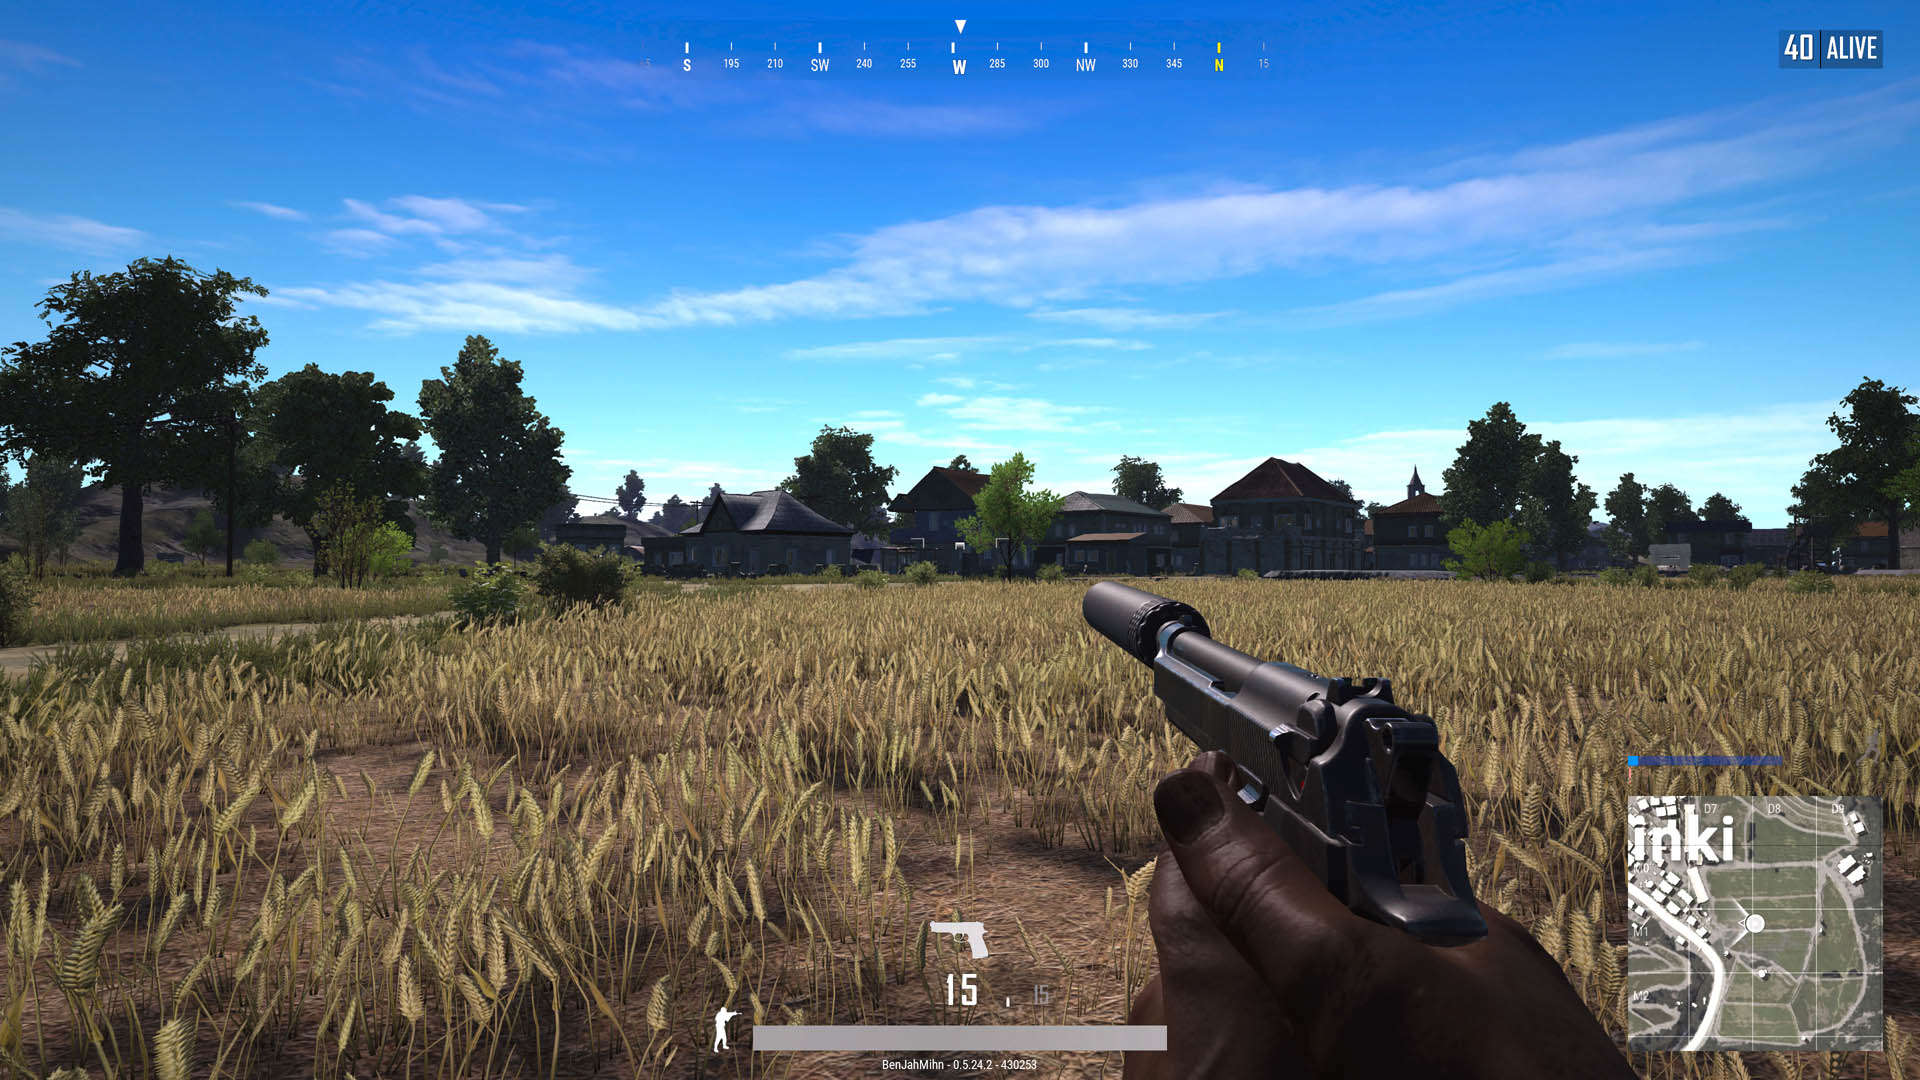 Ios Pubg Hd Yapma: PUBG Mobile Requirement For Android And IOS: All You Need